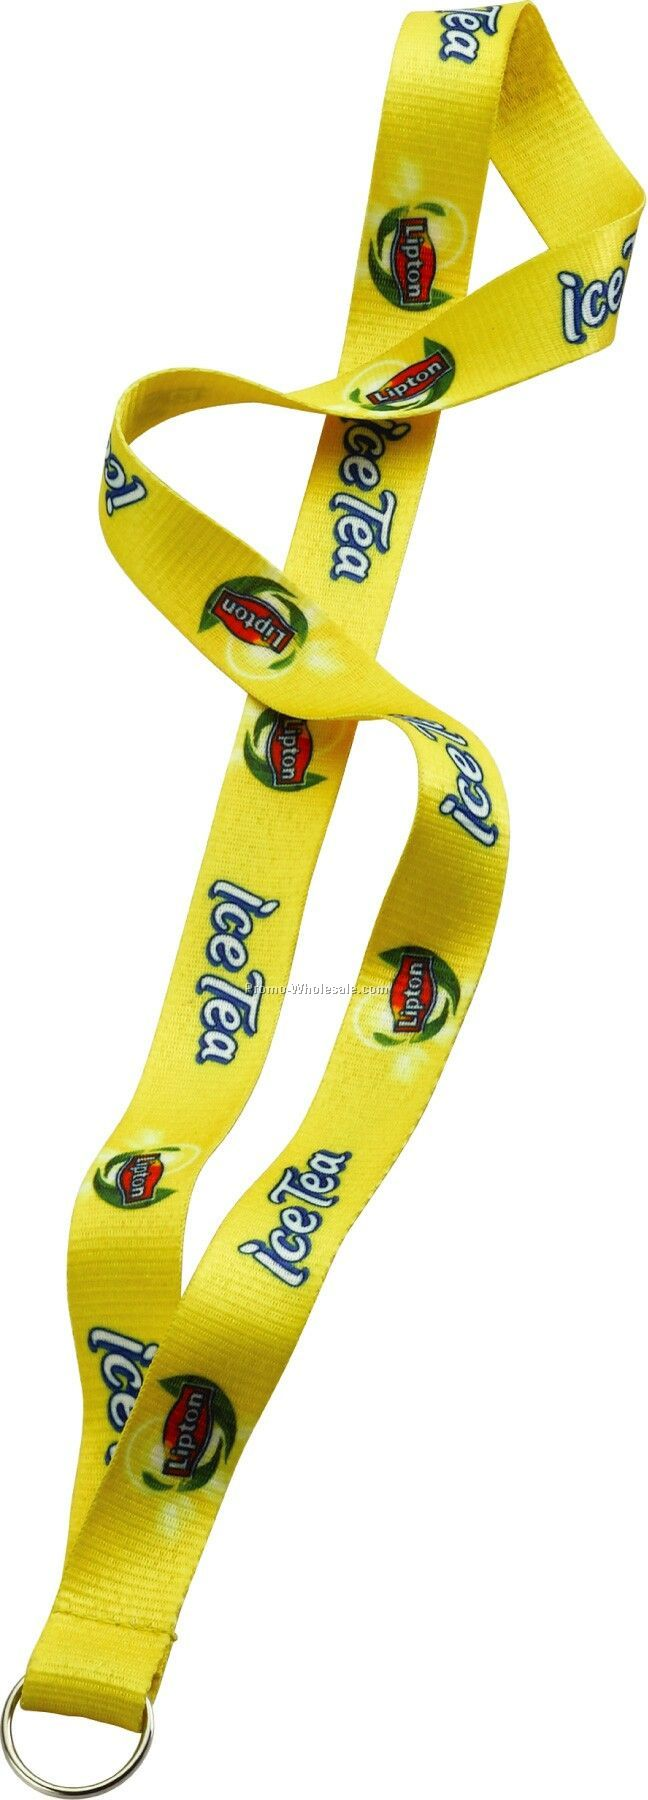 "3/4"" Imported Dye Sublimated Lanyard With Sewn Split Ring"